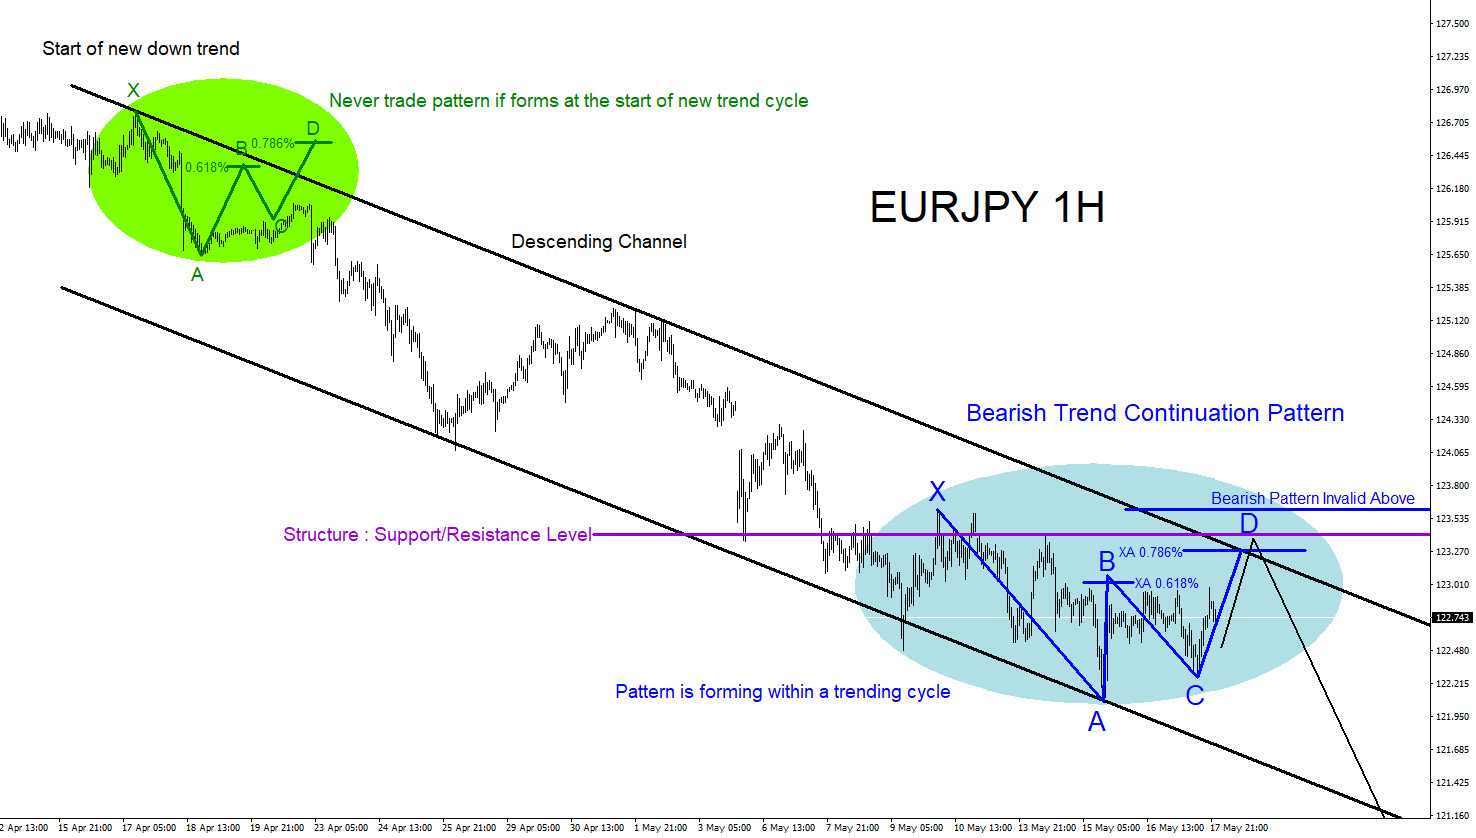 EURJPY : Trend Continuation Market Pattern Forming?